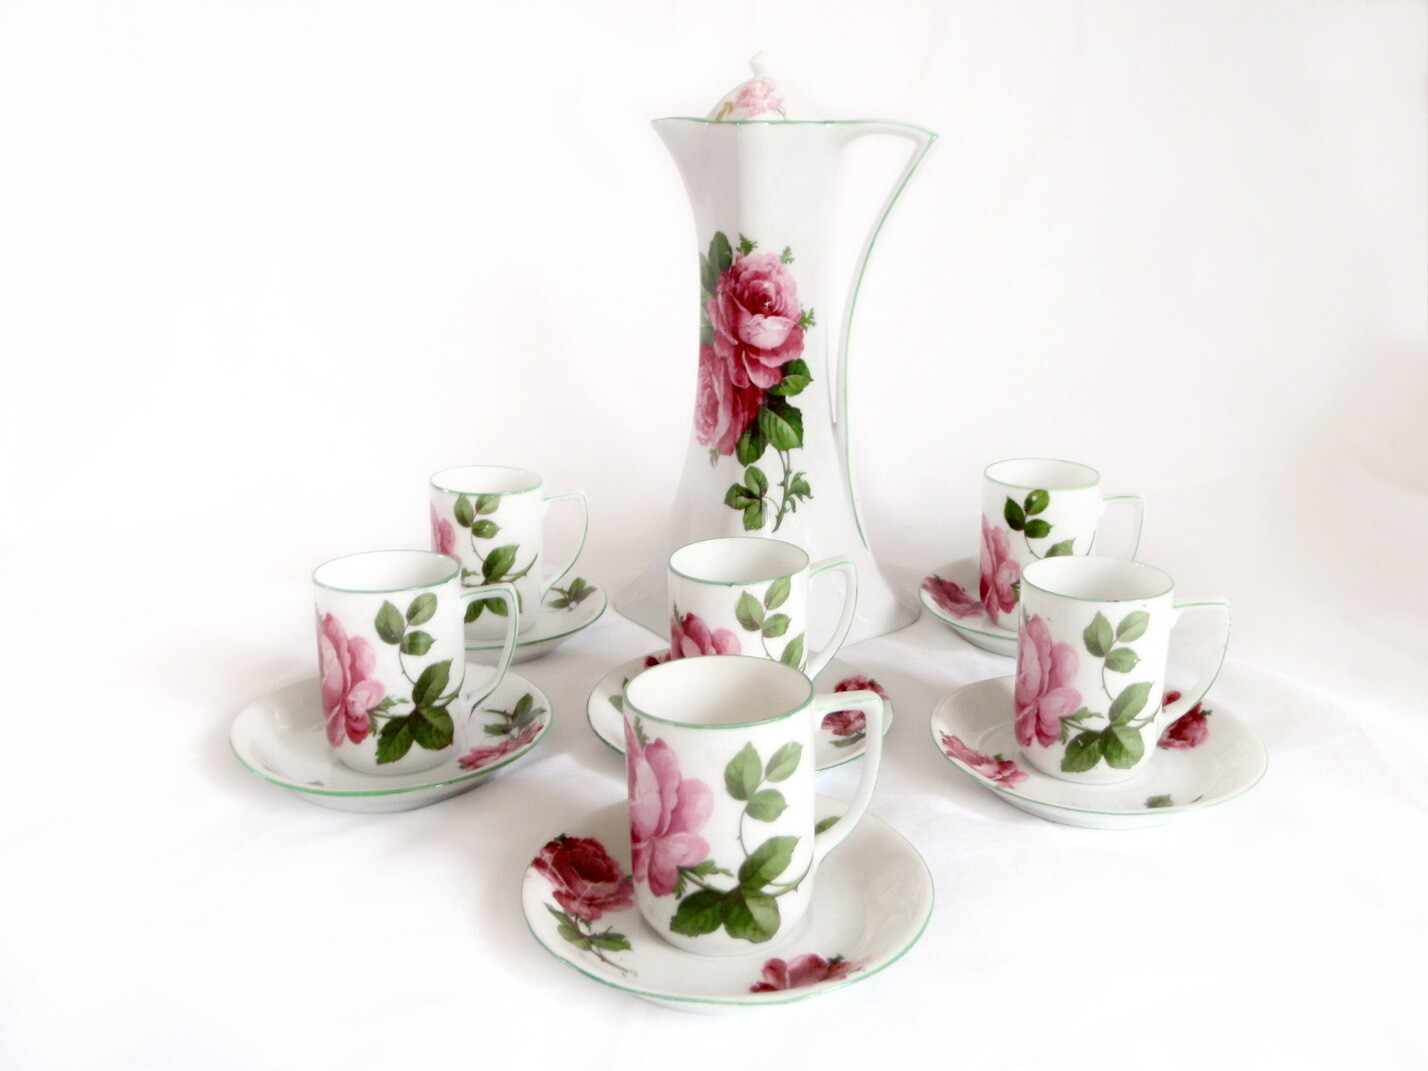 Antique Austrian Porcelain Chocolate Pot with 6 Cups and Saucers